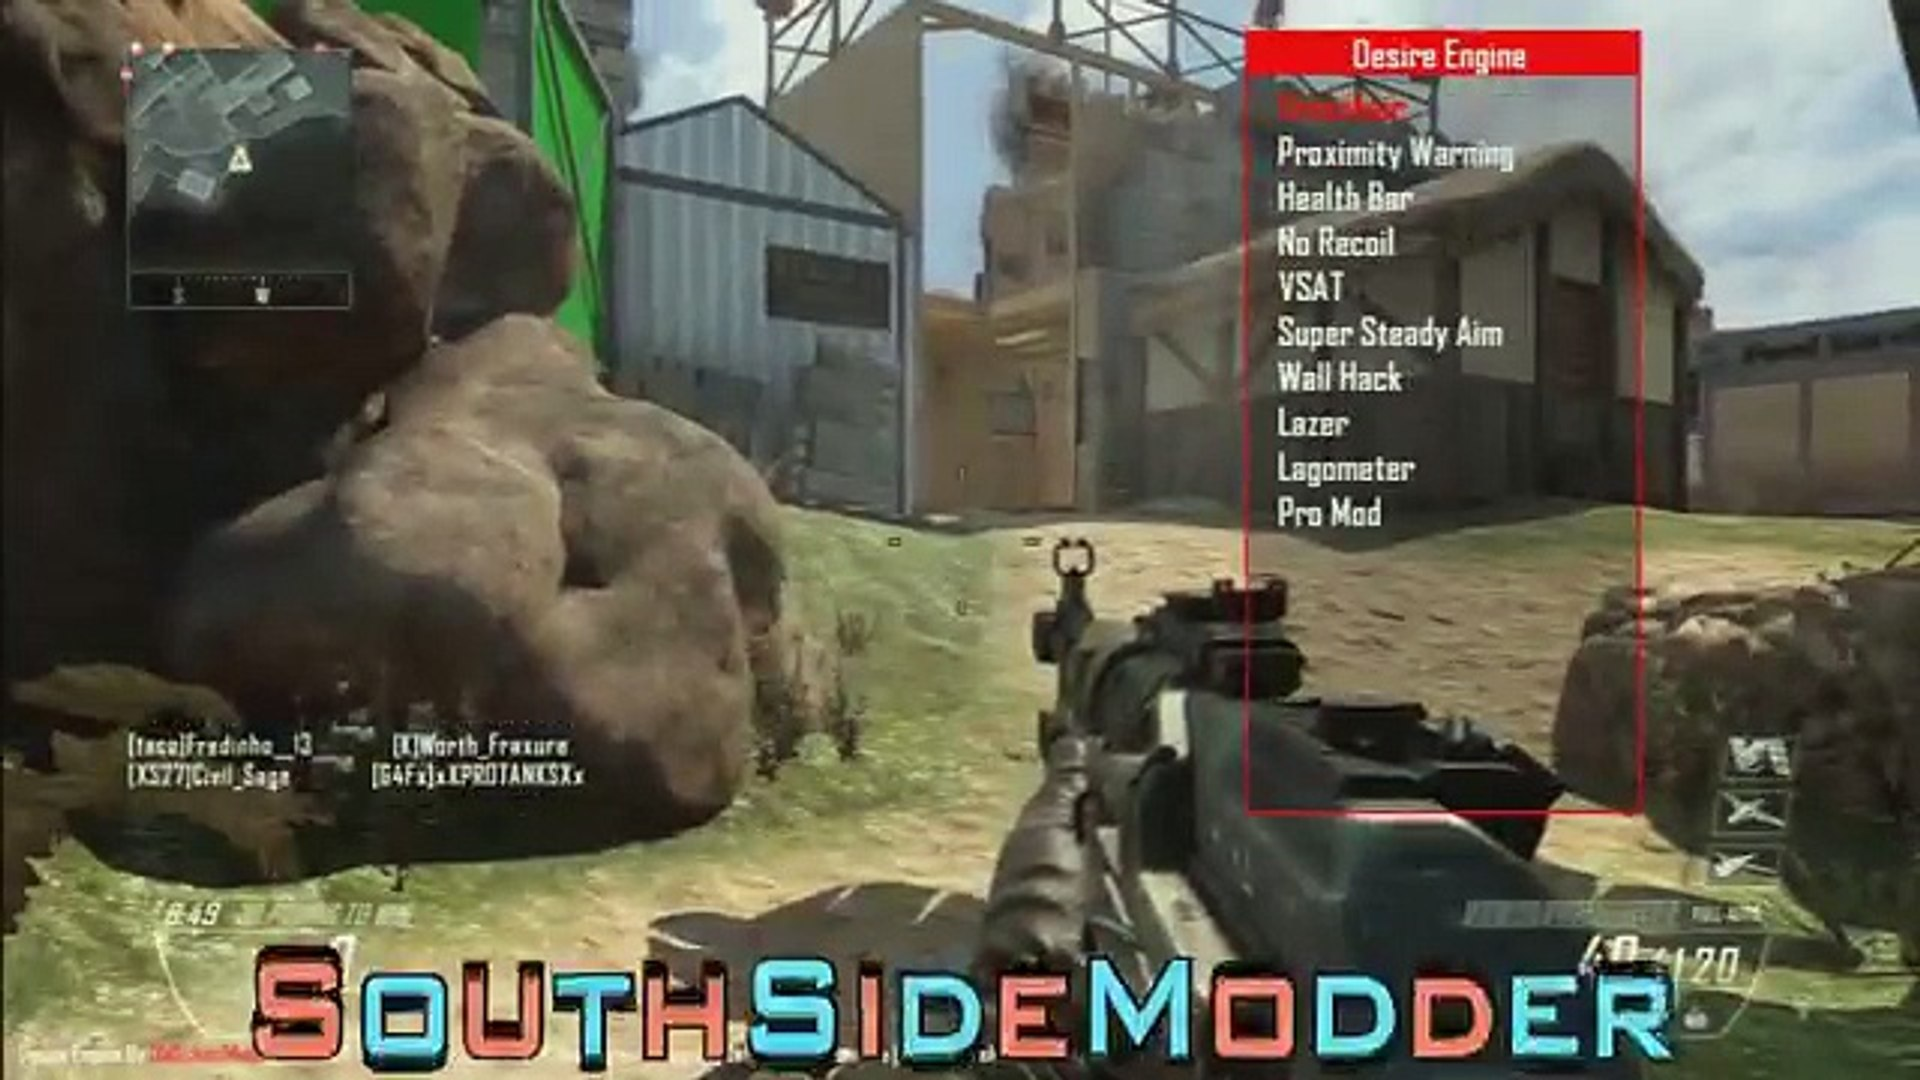 [Bo2_1 19] Desire Engine Non-Host Mod Menu (Aimbot, Red Boxes _ More!!!)